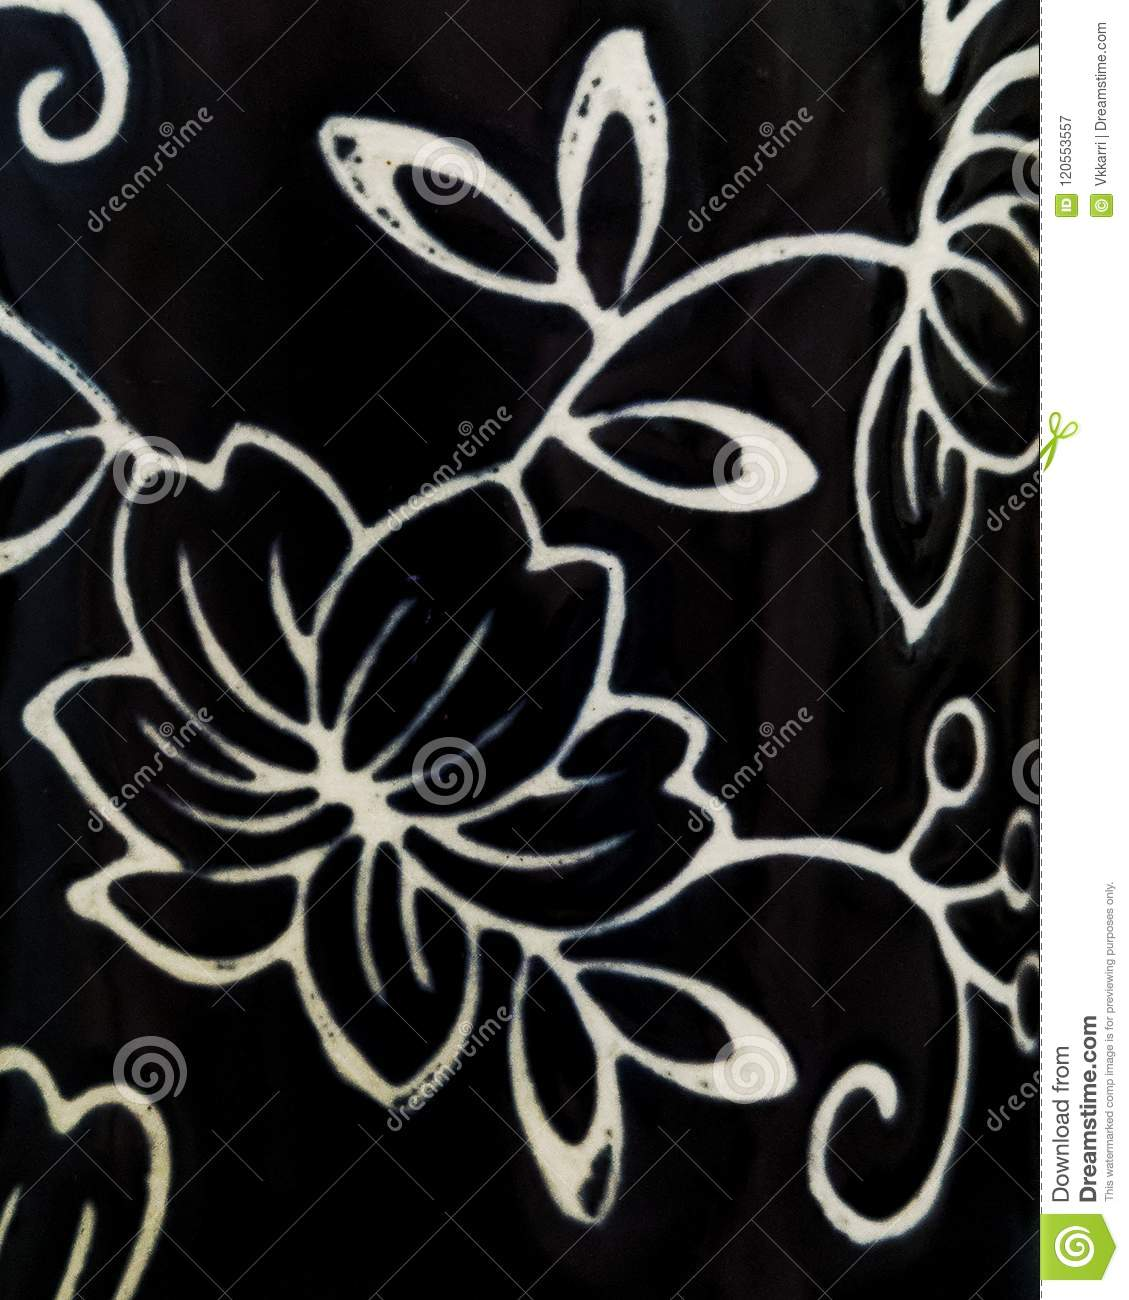 Minimalist Floral Black And White Patterned Wallpaper Stock Image